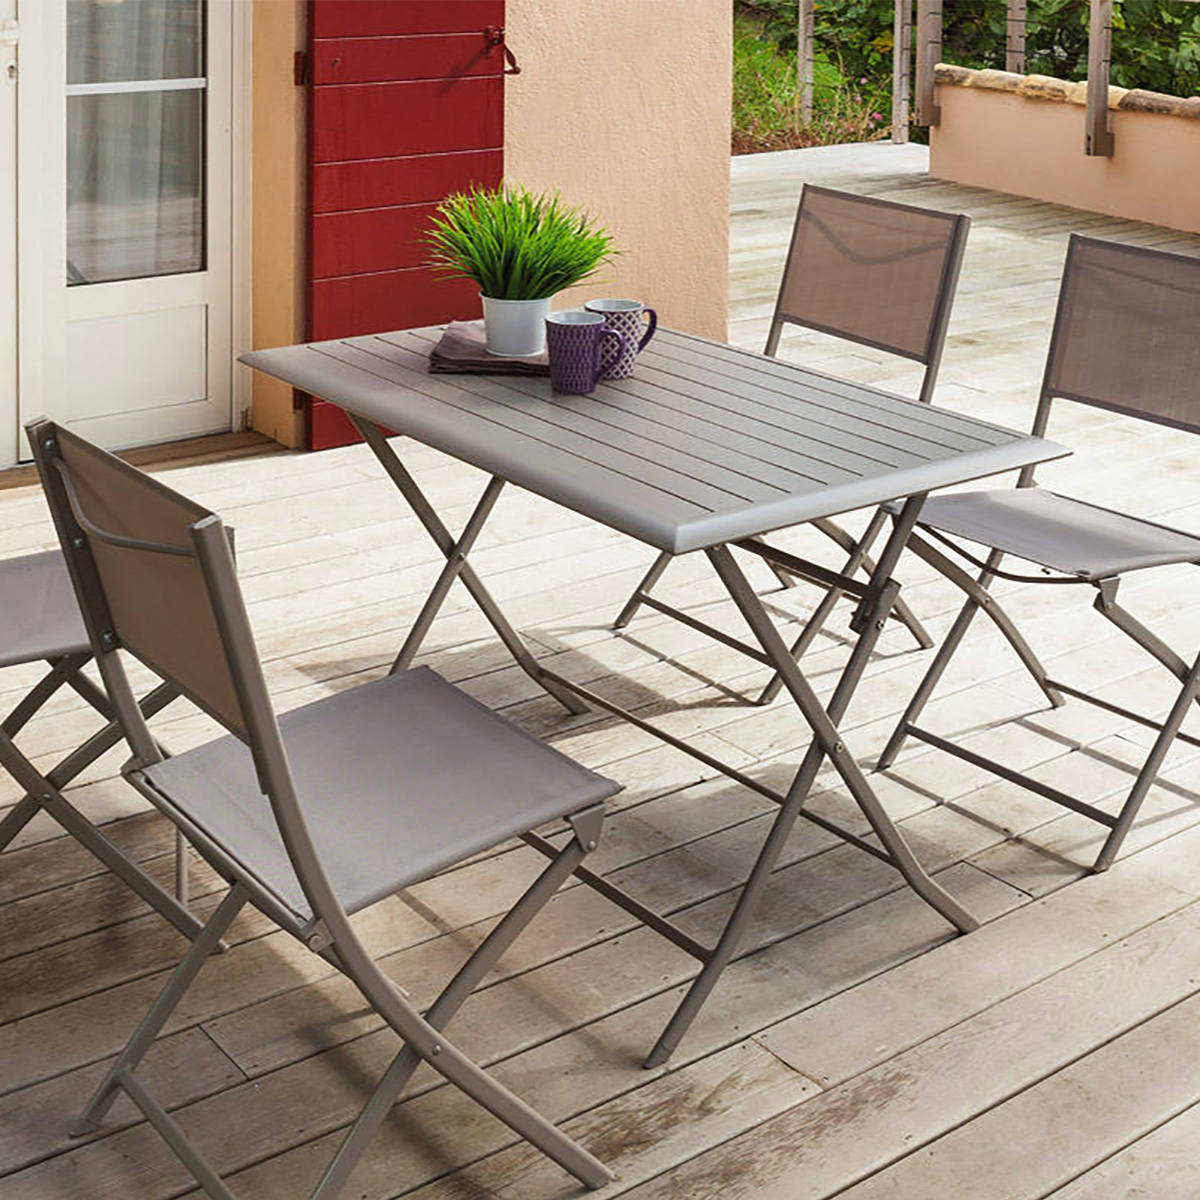 Table de balcon pliante rectangulaire azua taupe hesp ride - Ikea table balcon ...